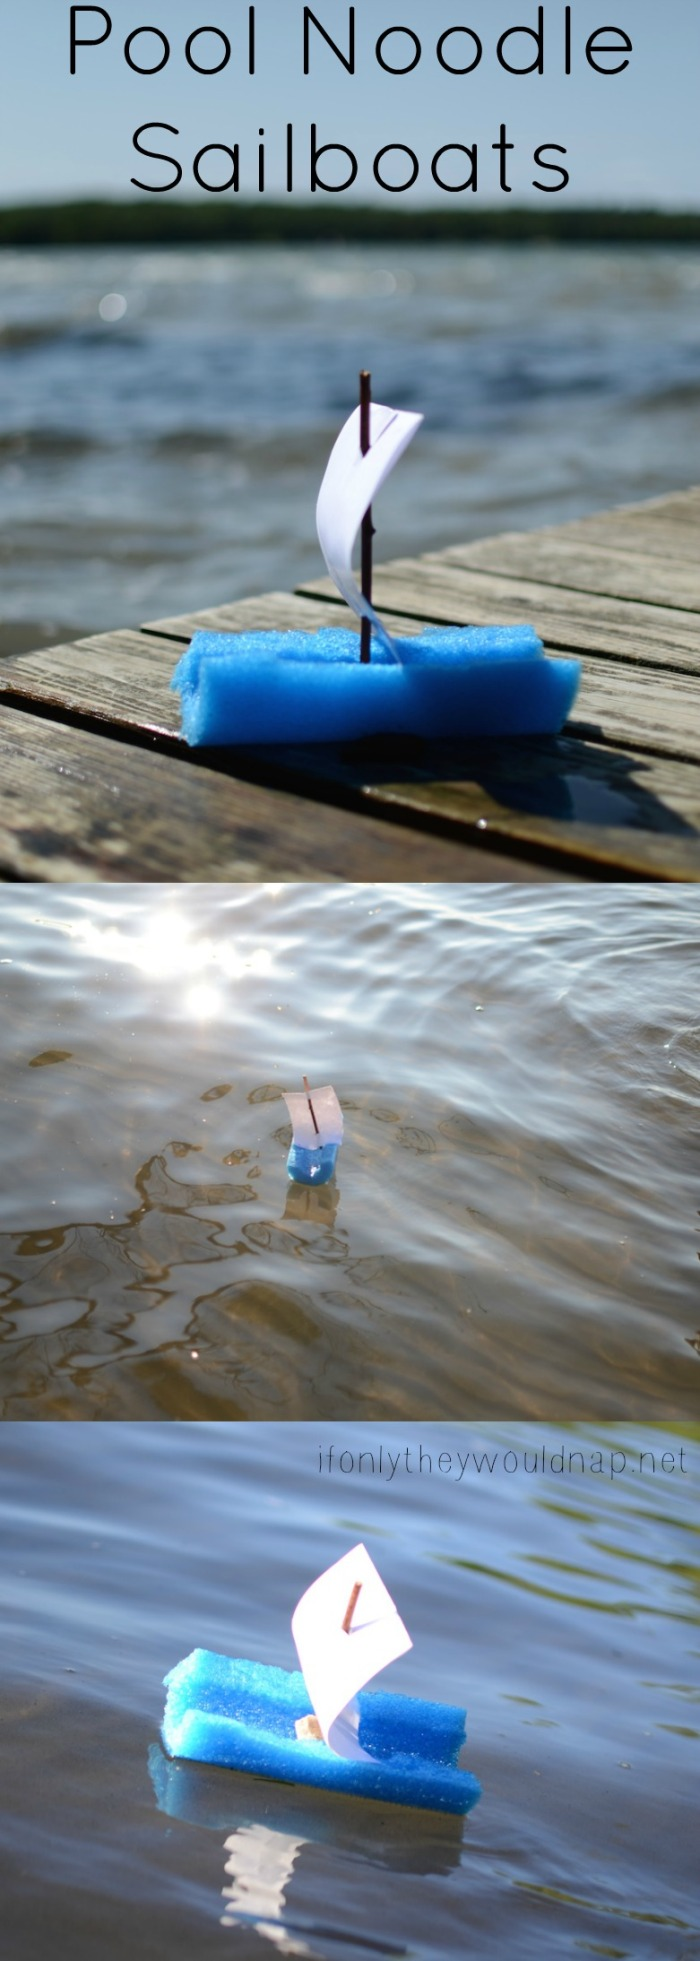 Summer fun for kids - make Pool Noodle Sailboats! Easy, fun, and inexpensive!